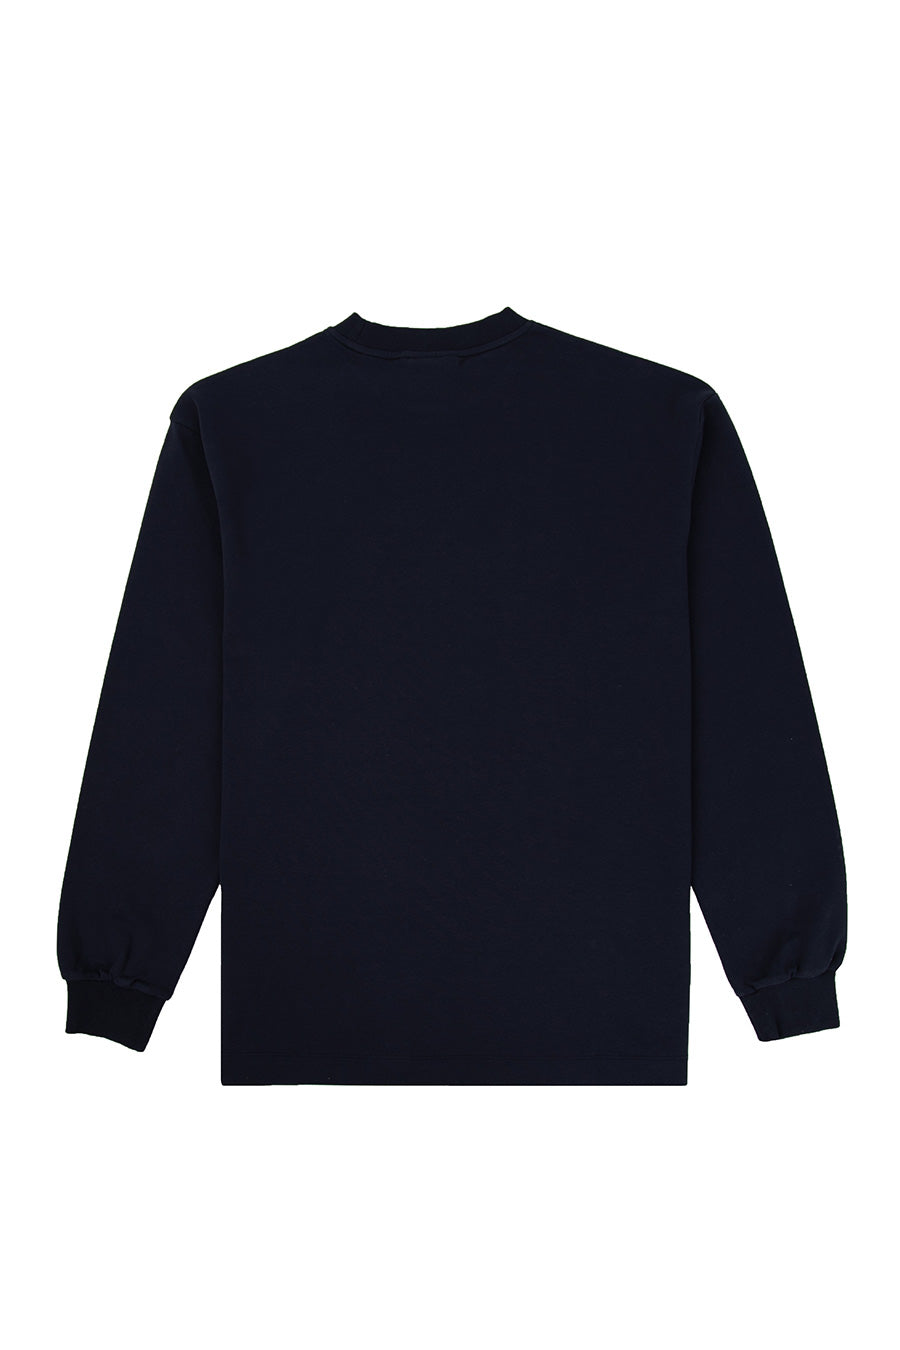 Drôle de Monsieur - NFPM Long Sleeve Tee | 1032 SPACE